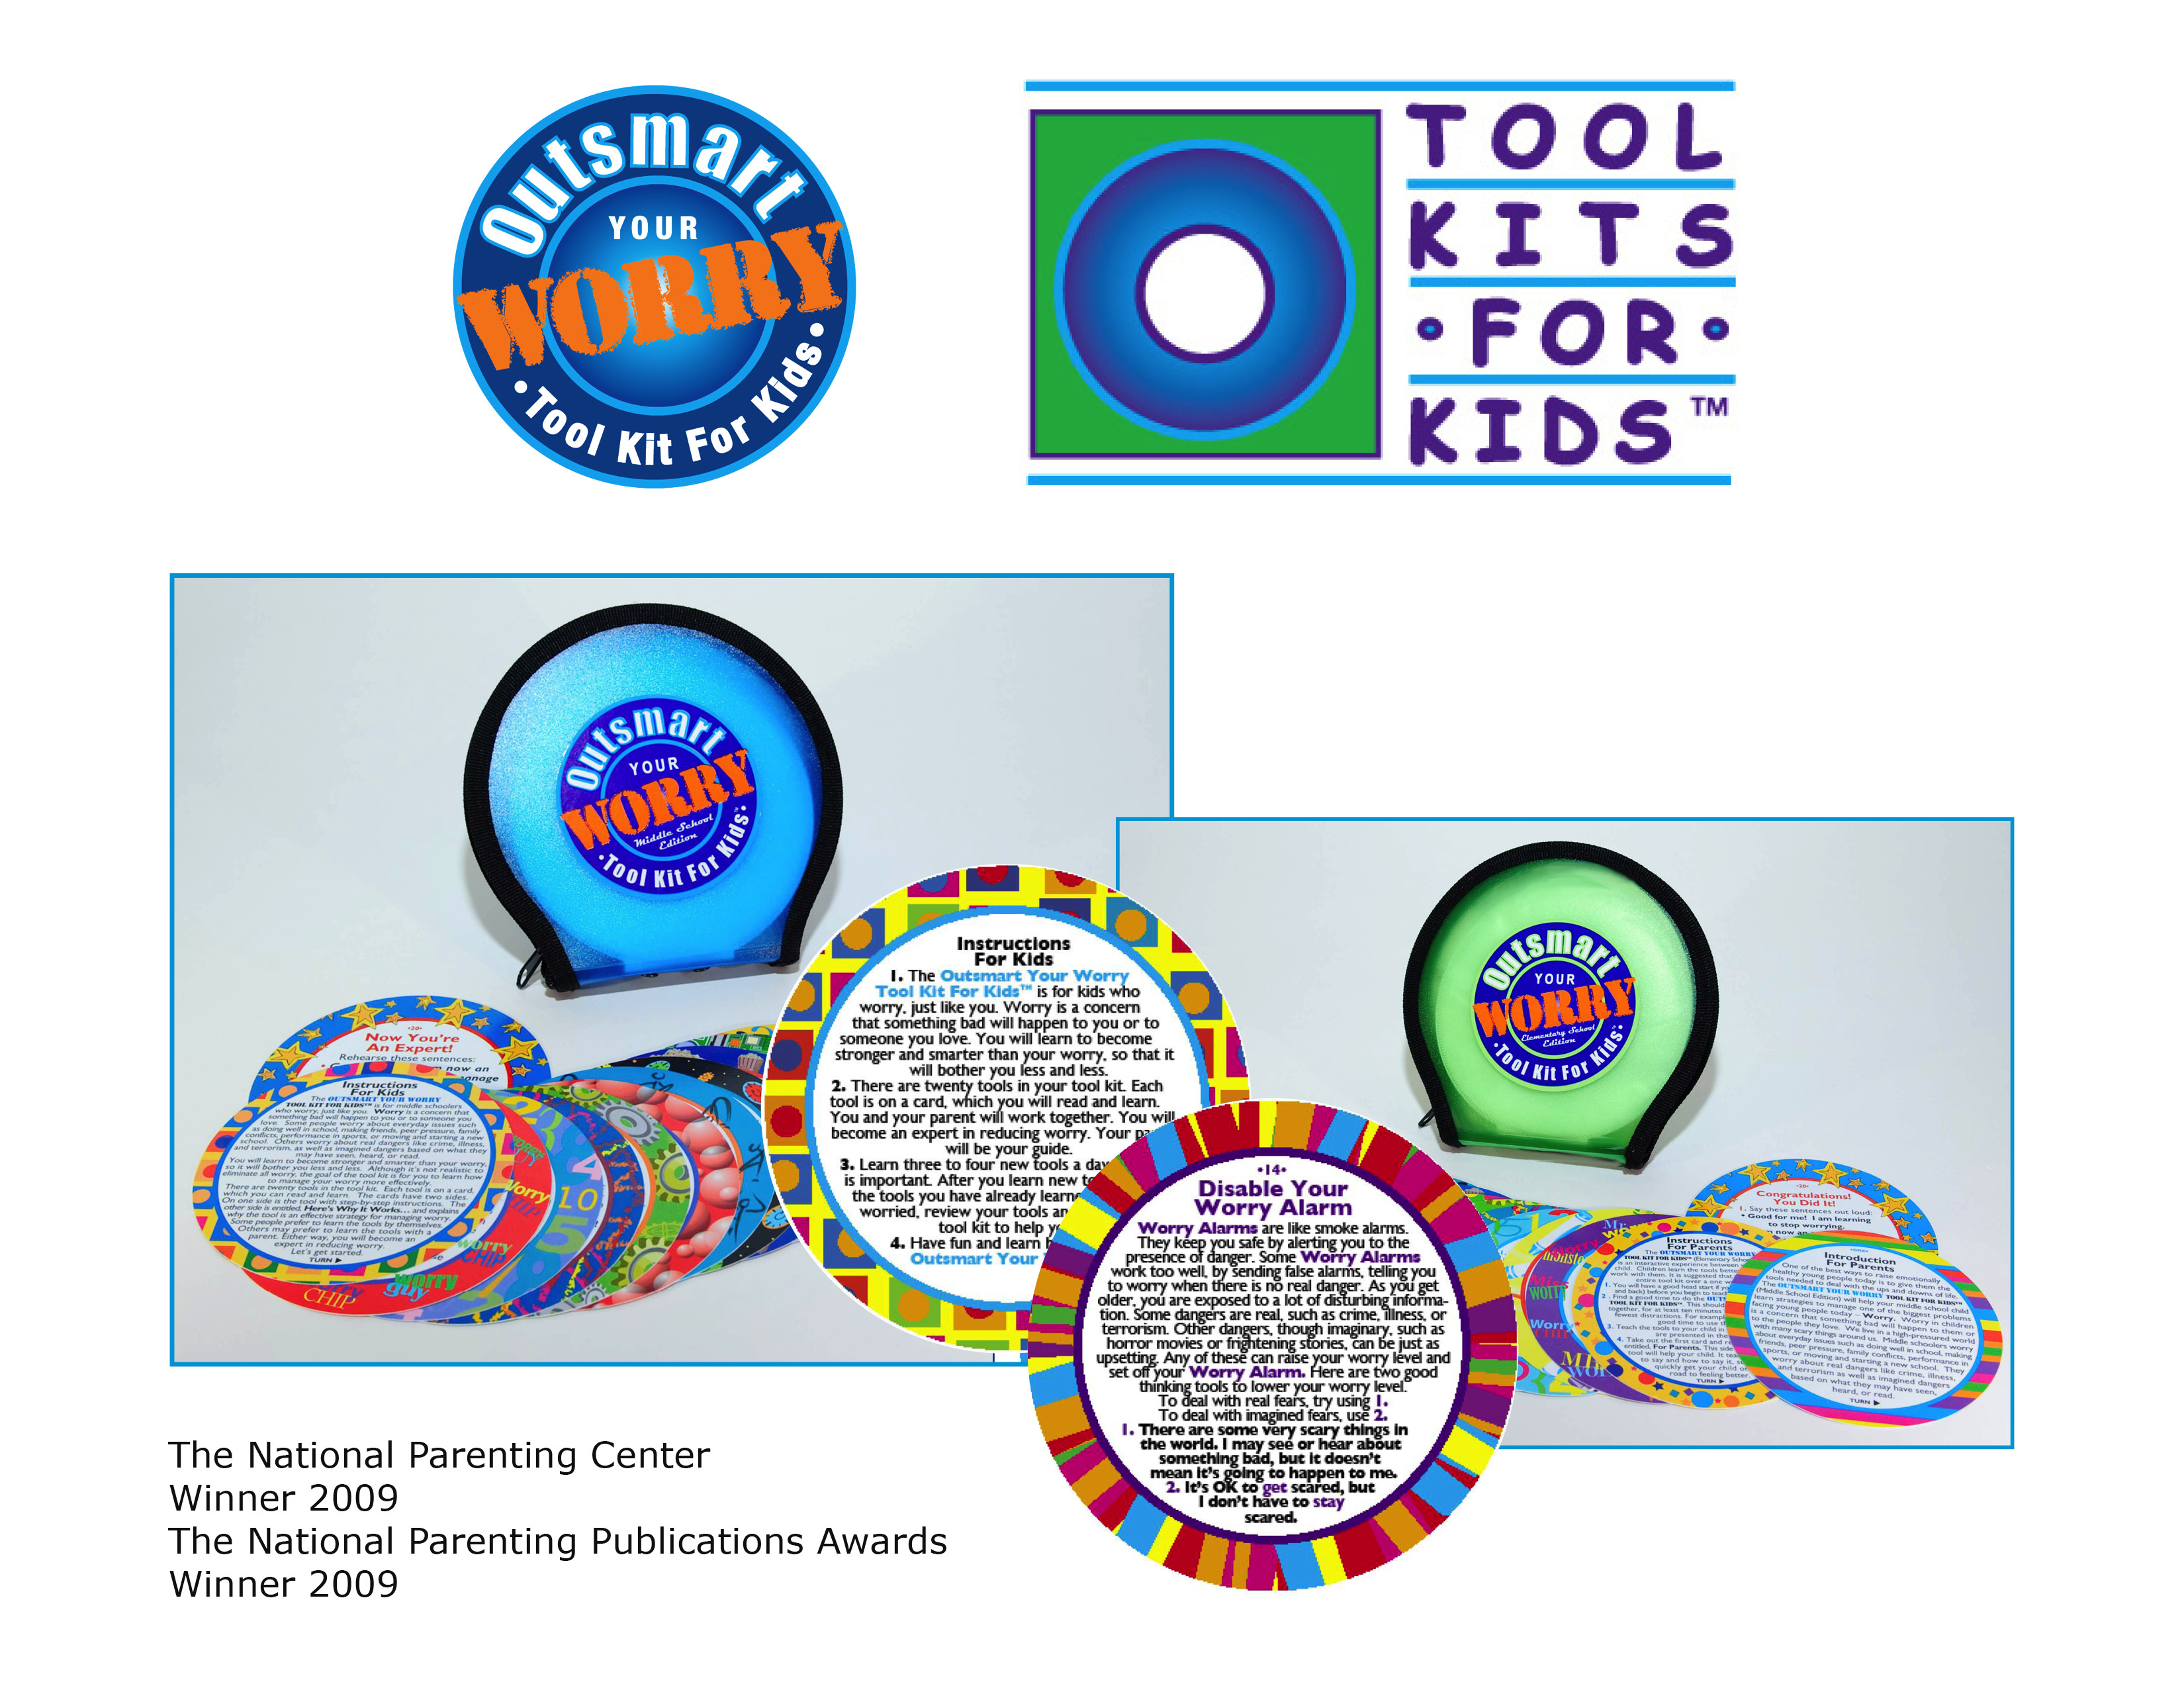 Toolkit for Kids